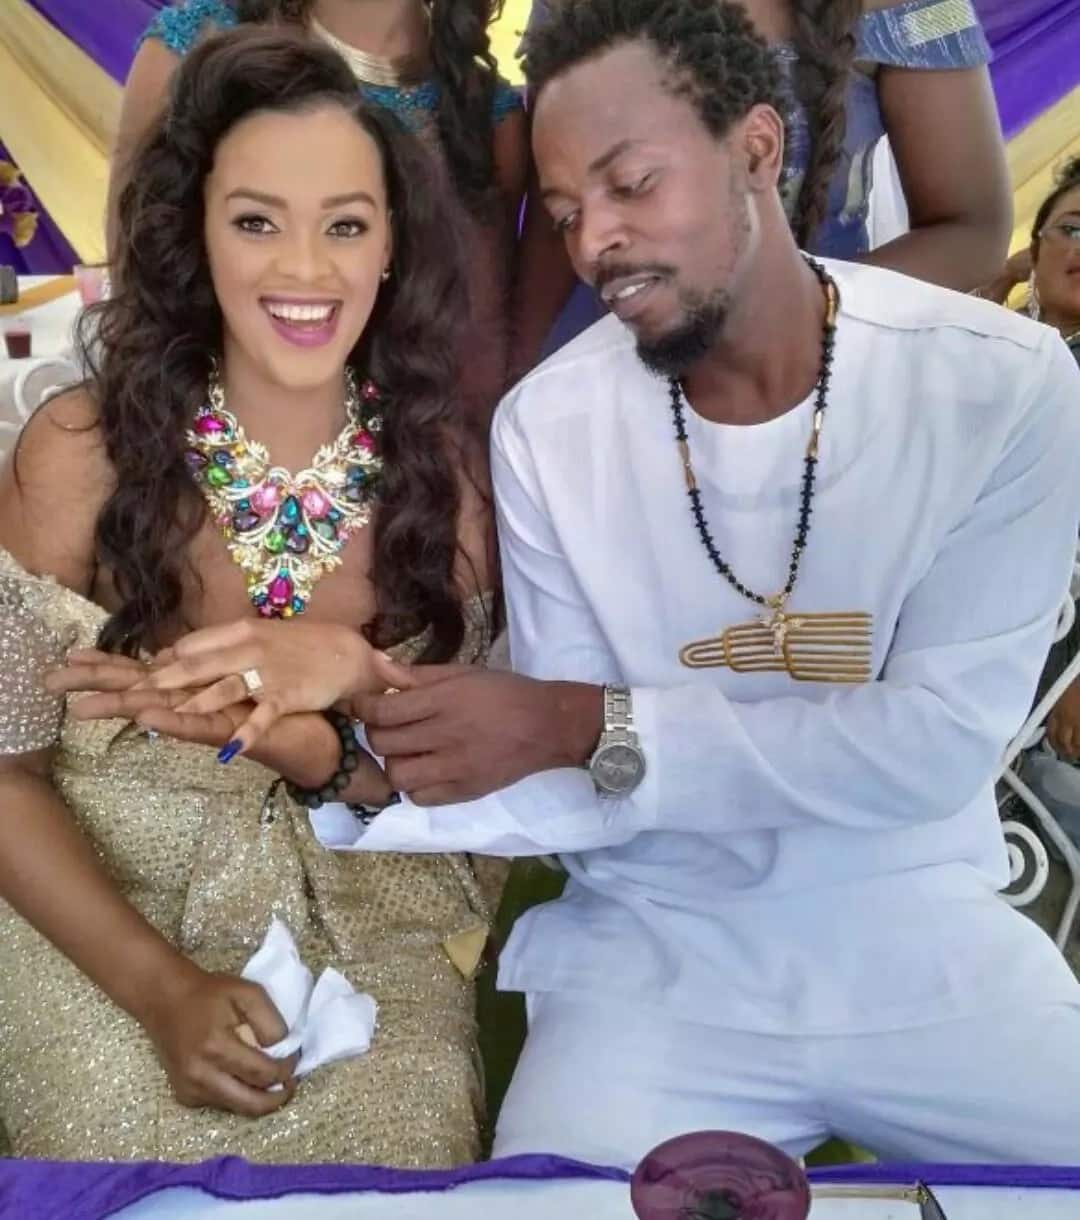 Korle-Bu and Ghana prison are the same -Kwaw Kese laments over the loss of his son